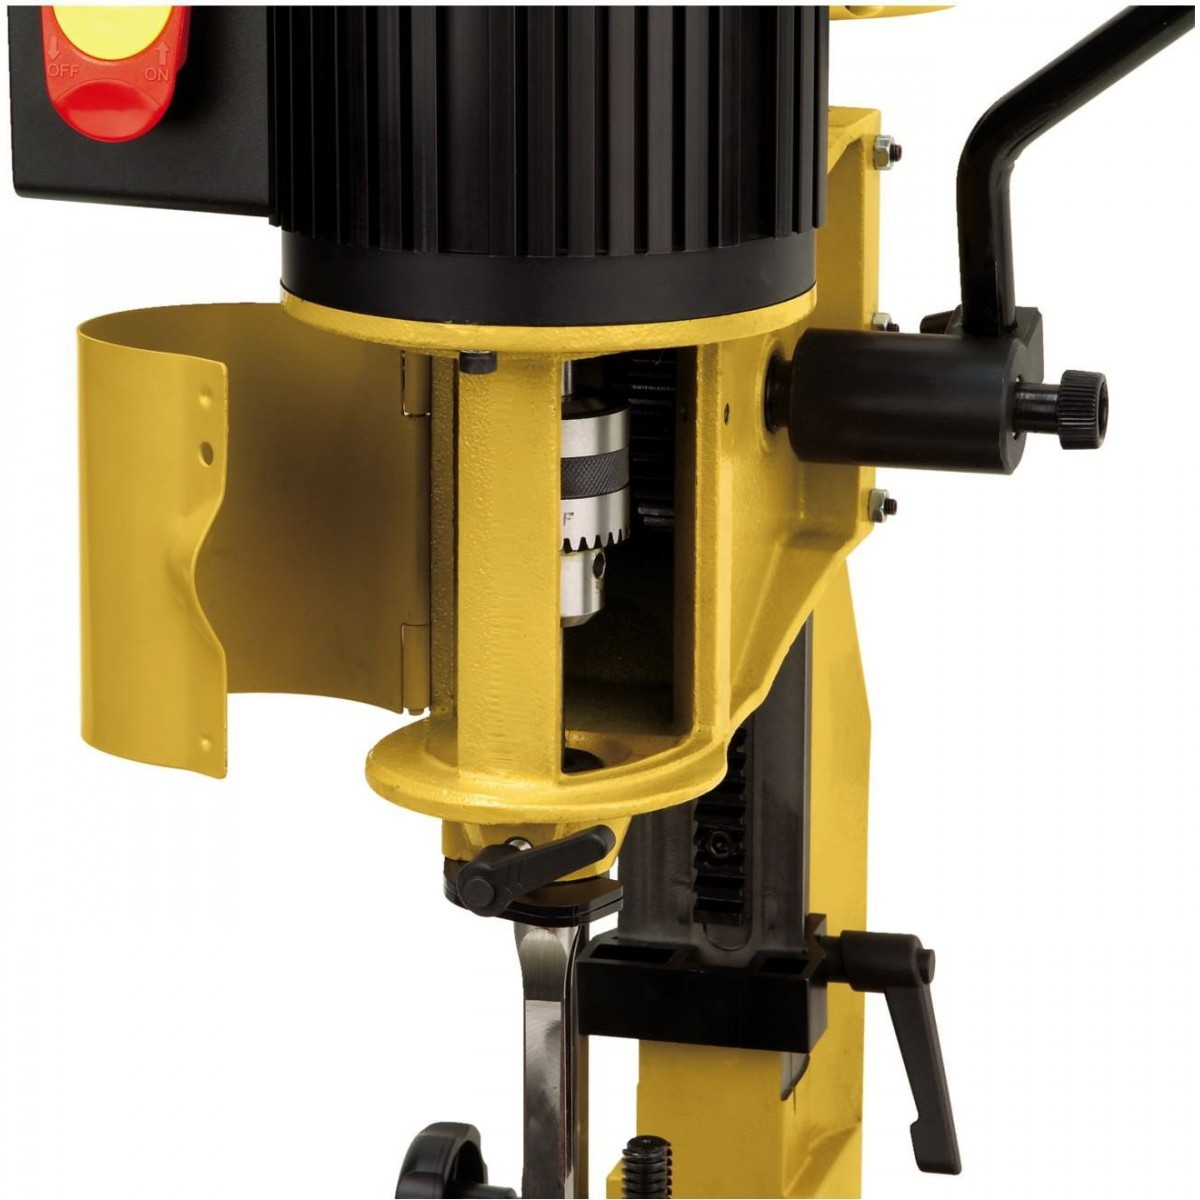 Powermatic 1791310 drill press